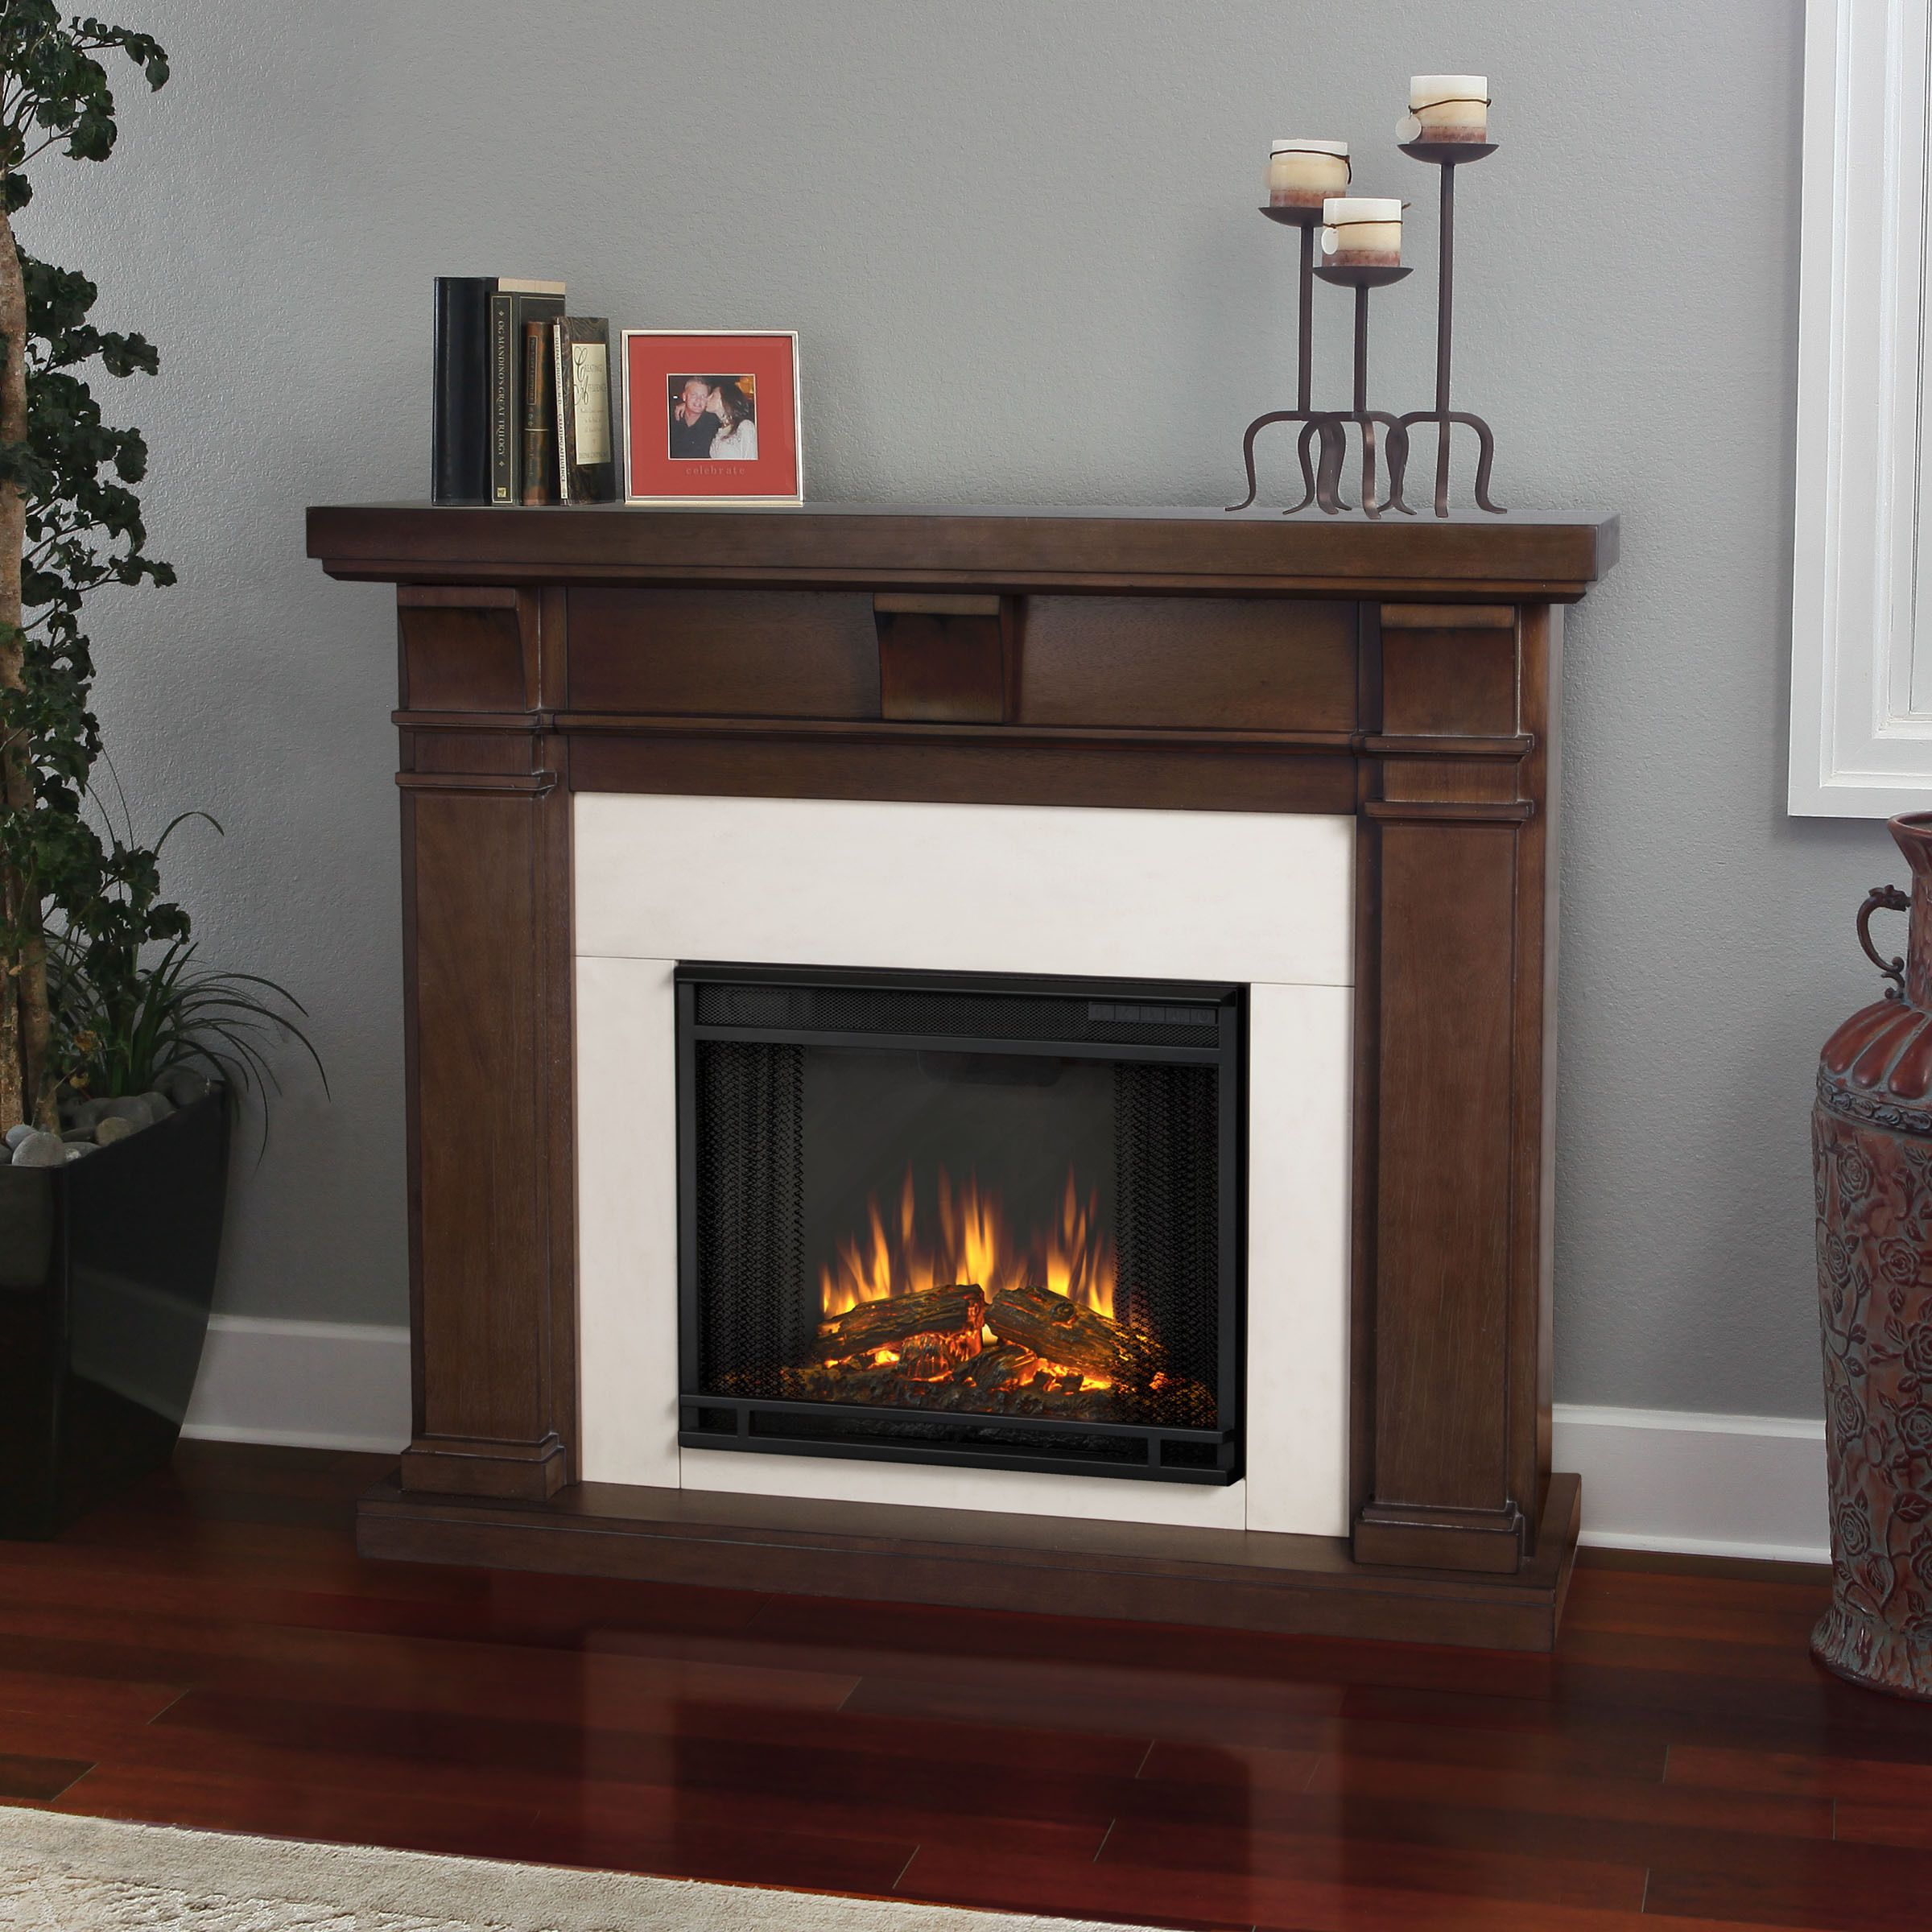 The Porter Fireplace features distinct craftsman appeal with three